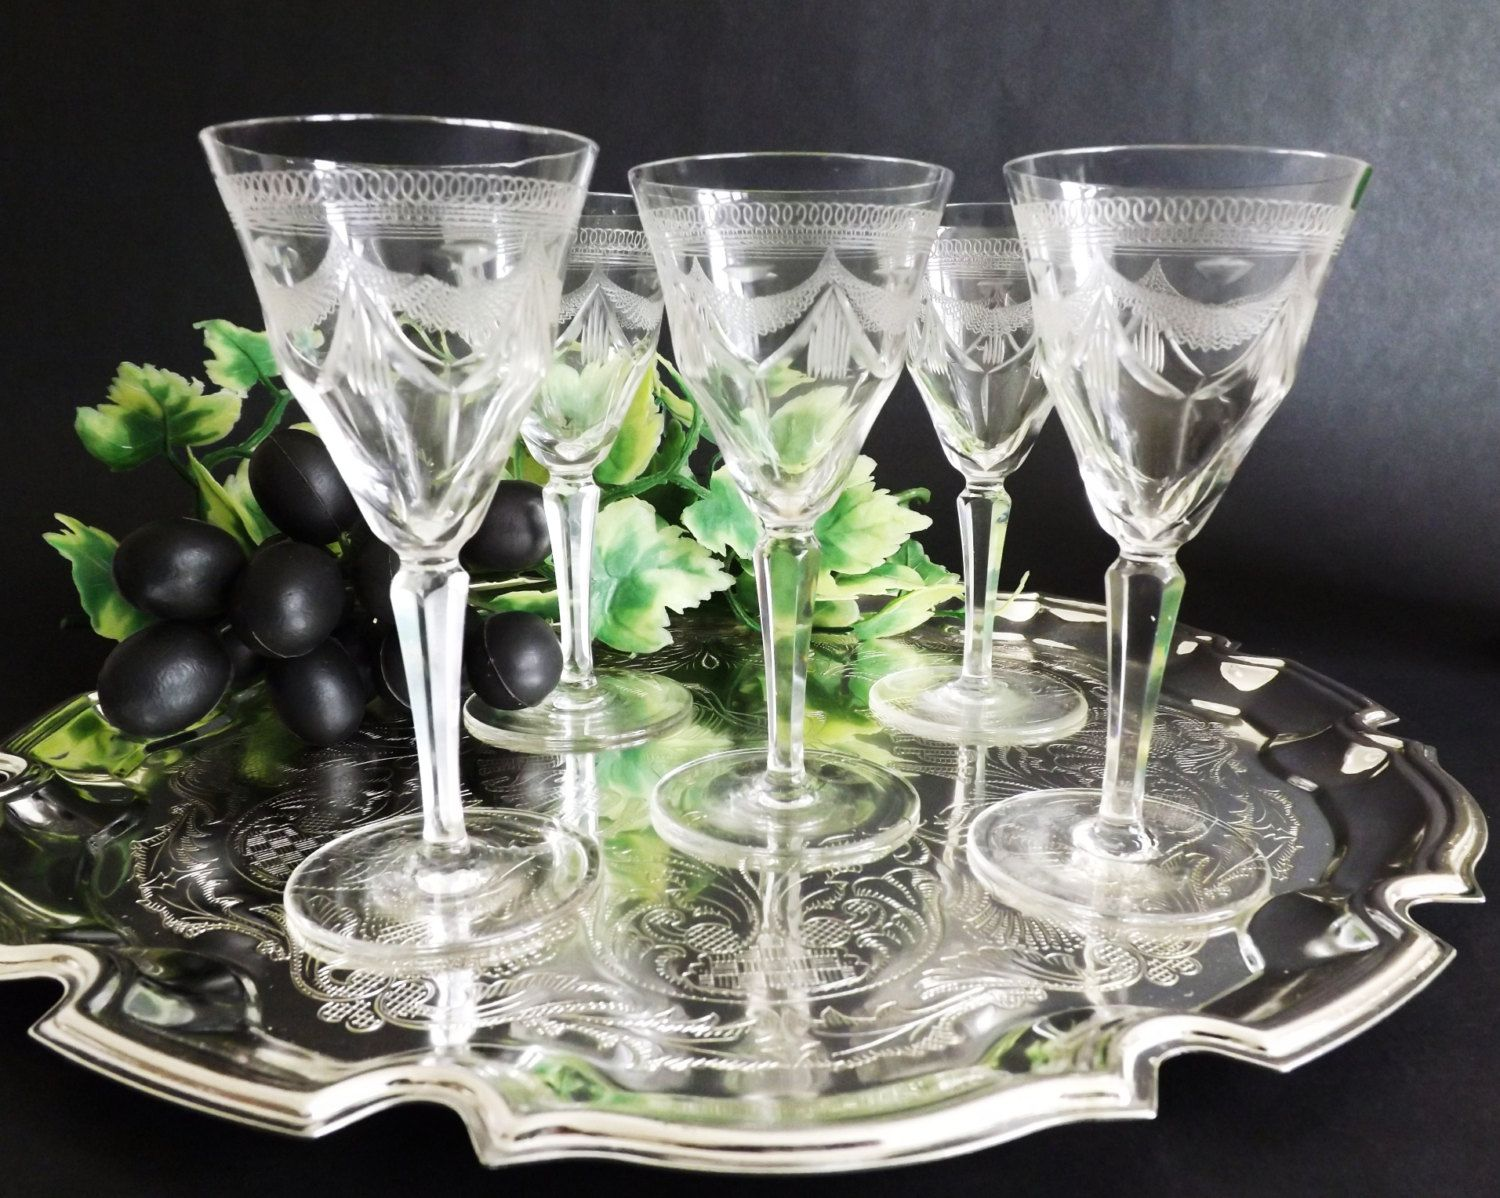 Antique Crystal Sherry Glasses, Fine Edwardian Port Glass, Liqueur Glasses, Etched Stemware, Vintage Pall Mall Stemware, Barware by CuriosAnCollectibles on Etsy